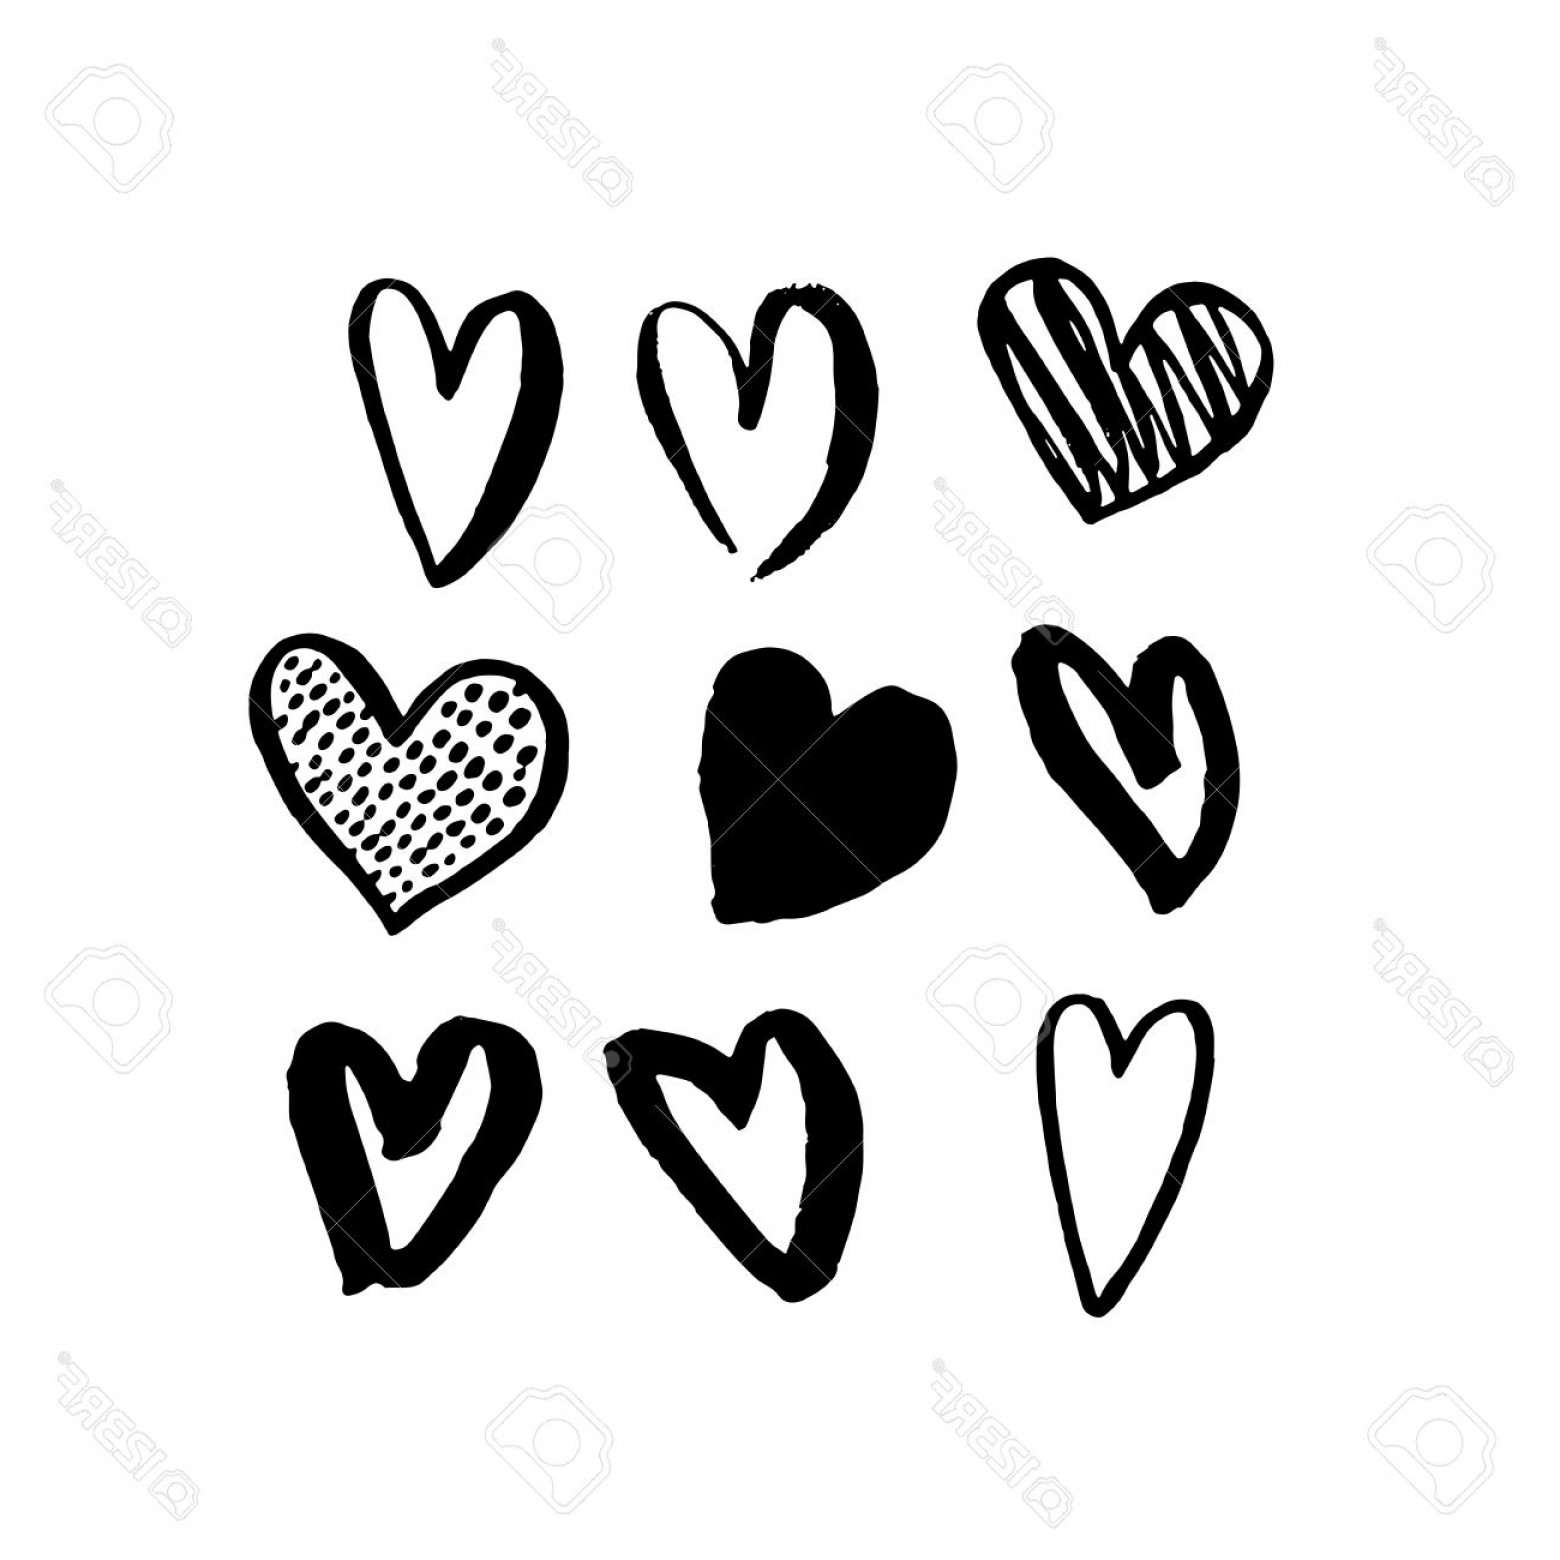 Heart In Hand Vector Clip Art: Photostock Vector Vector Heart Icons Hand Drawn Art Design For Saint Valentine Day Isolated Hearts Set Pattern Love Sk